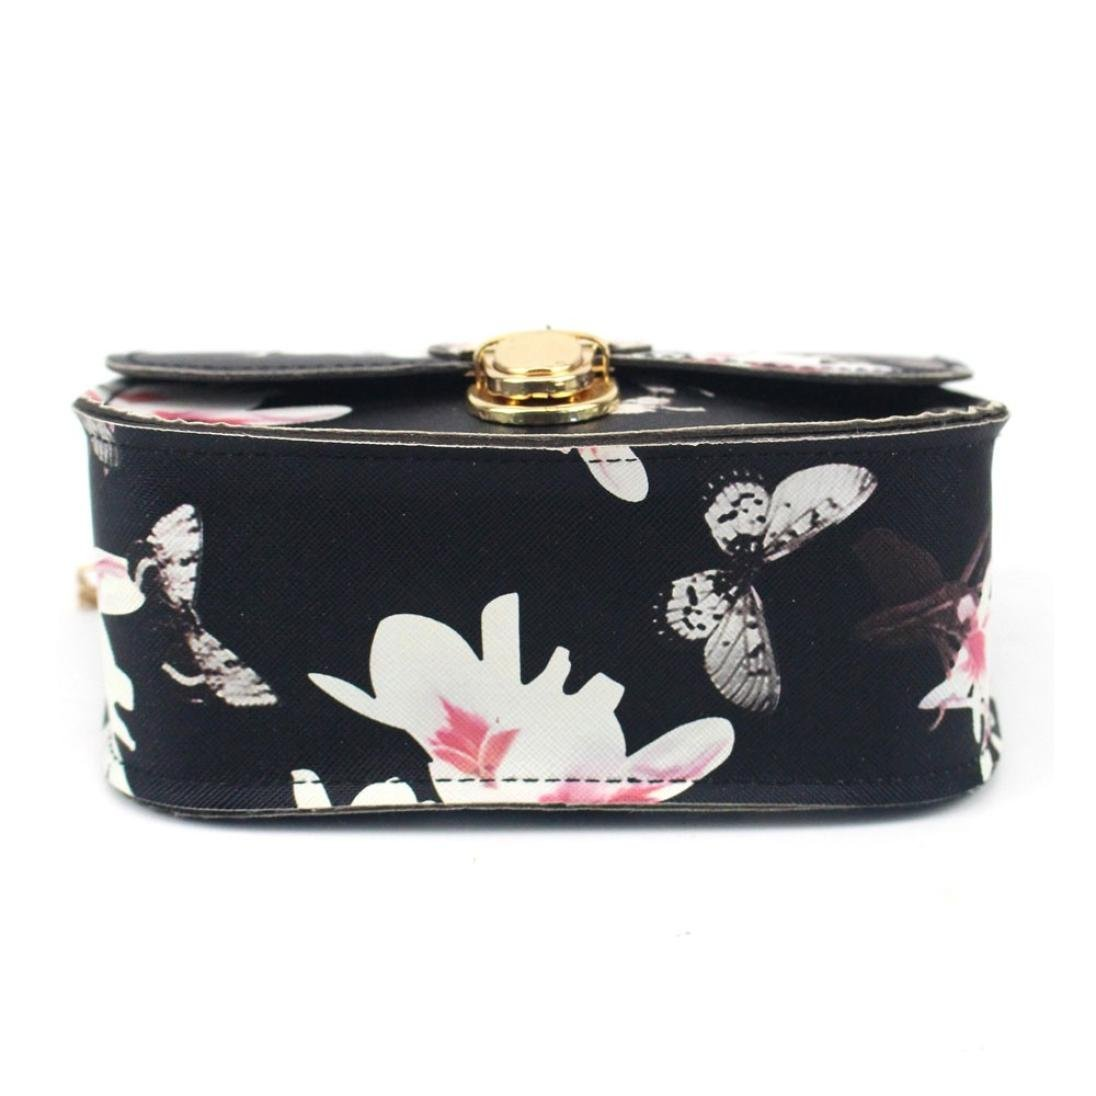 Outsta Butterfly Flower Printing Handbag,Women Shoulder Bag Tote Messenger Bag Phone Bag Coin Bag Travel Backpack Bucket Bag Classic Basic Casual Daypack Travel (Black) by Outsta (Image #4)